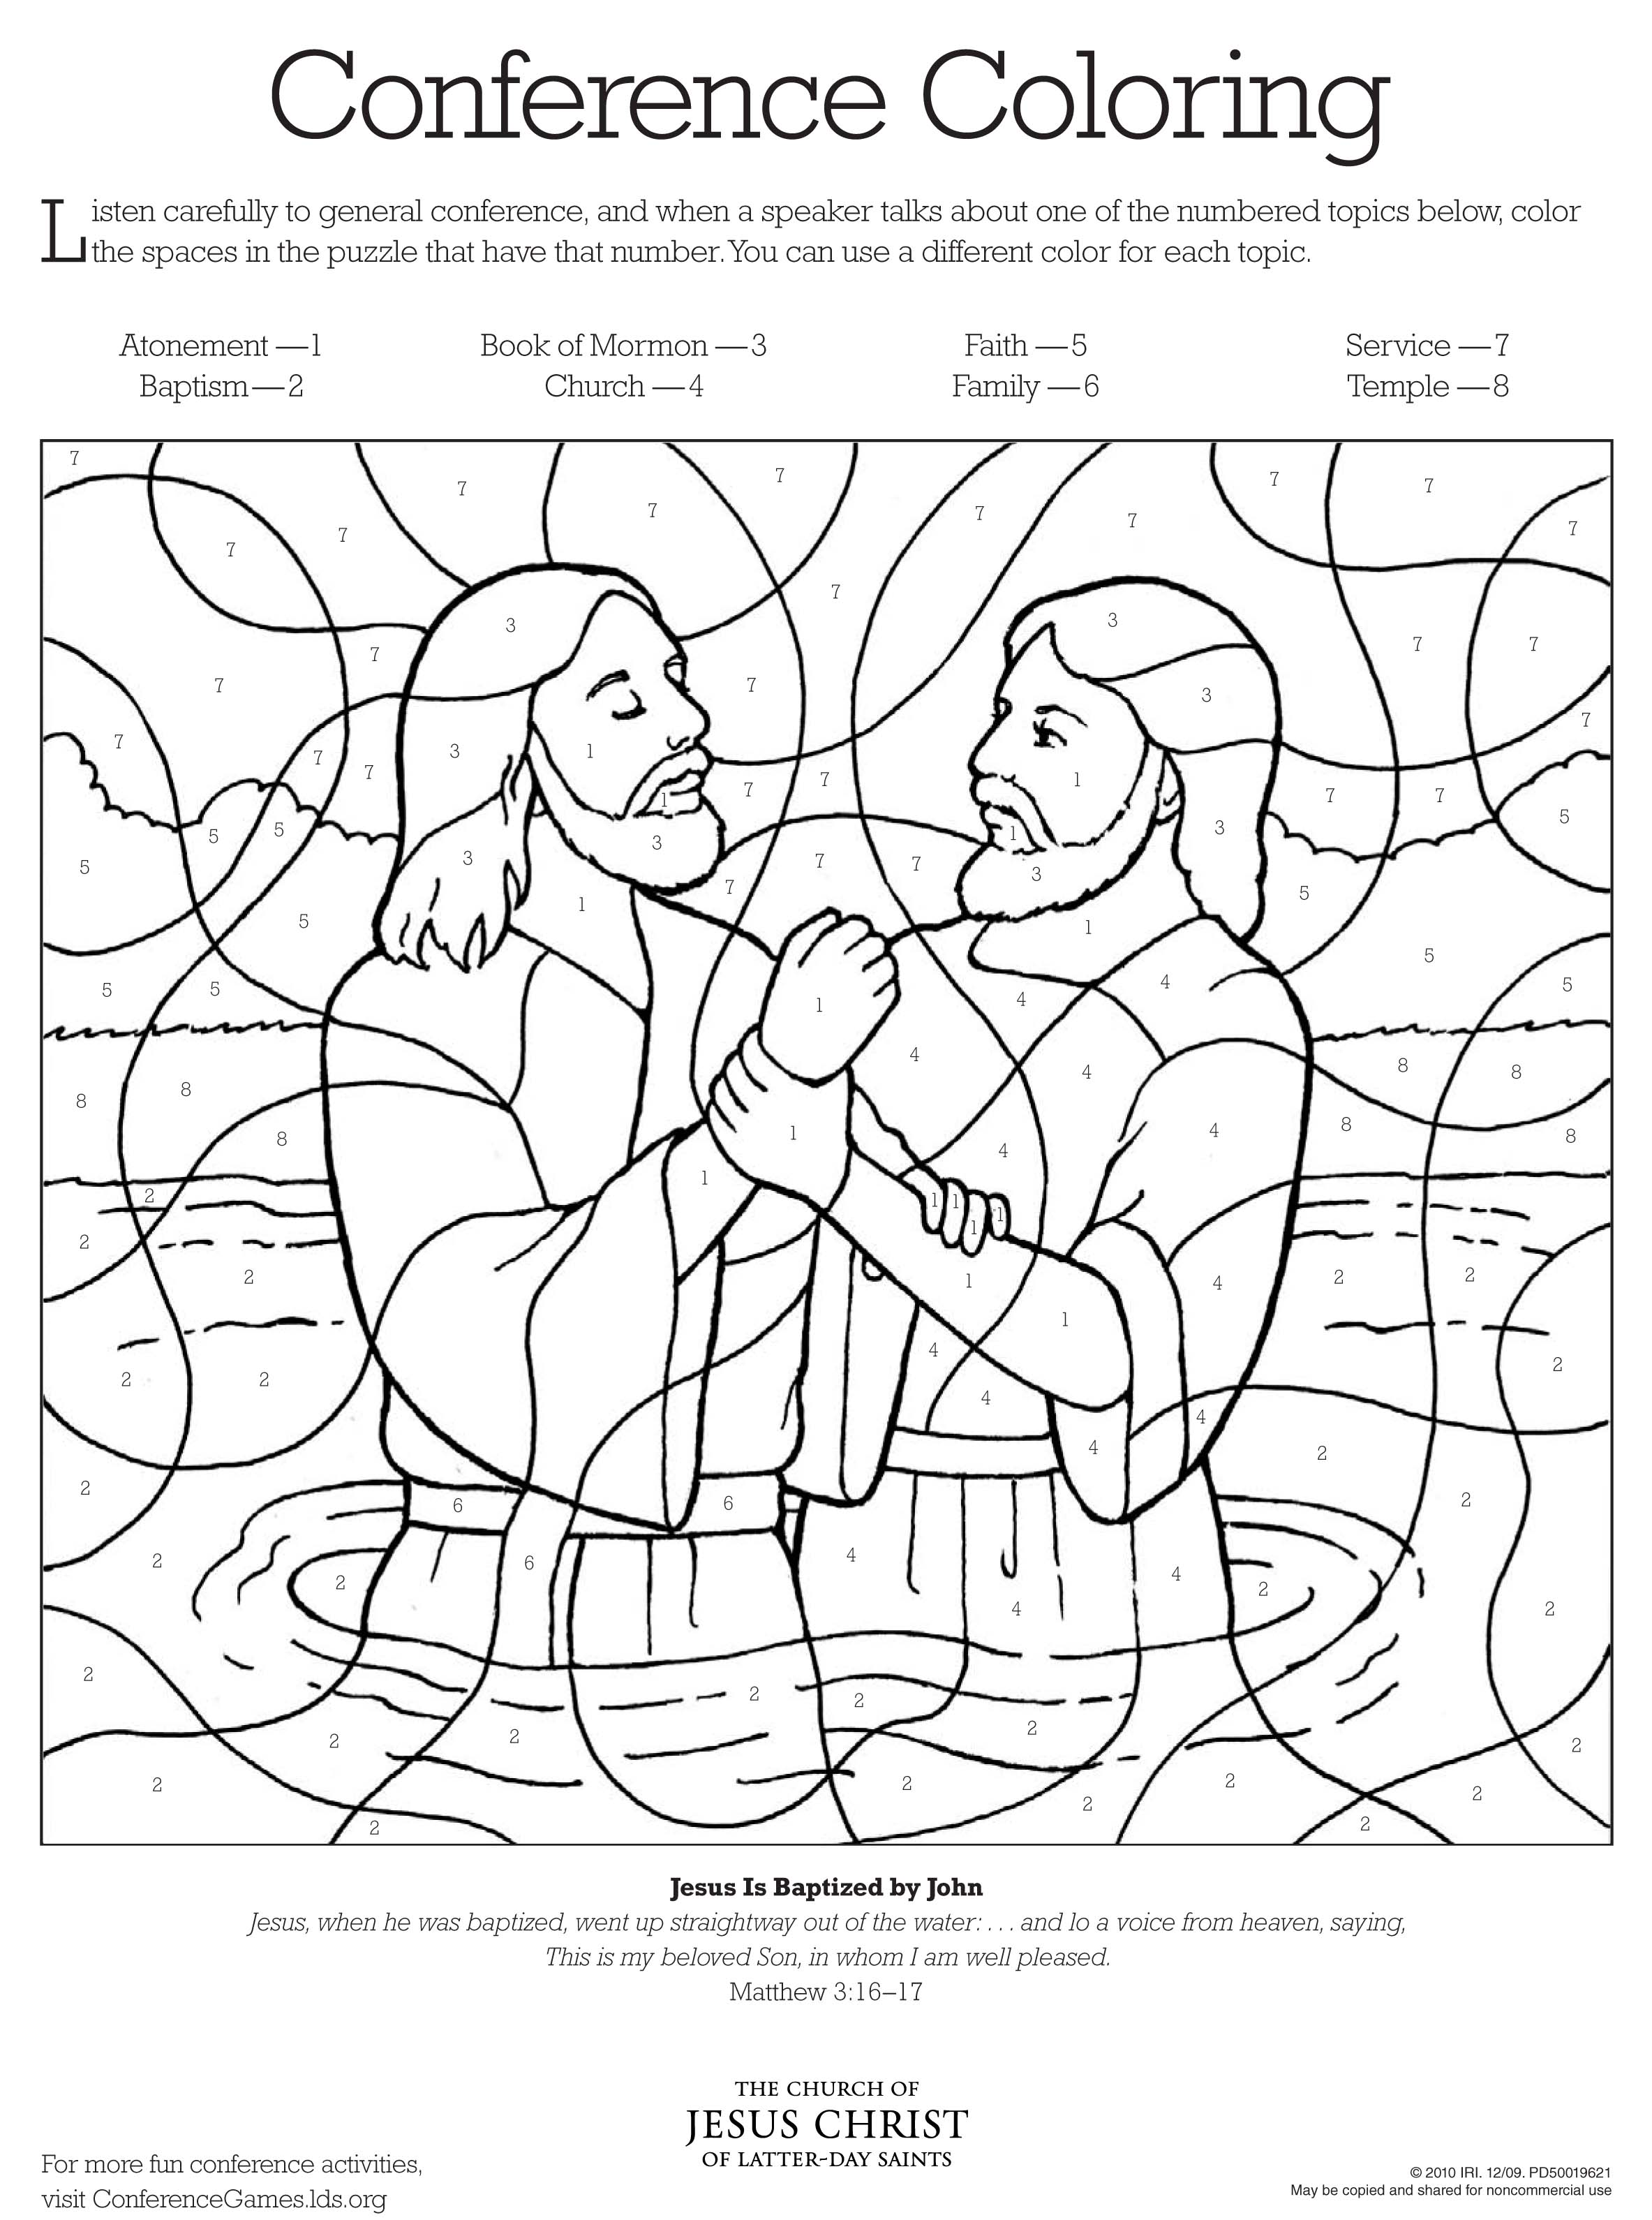 Ladybug Cut Out Pattern together with Jesus Forgiveness Coloring Page also 3 Easy Diy Valentines Day Cards moreover Cute Animal Coloring Pages besides Heart Coloring Book. on valentines day ideas